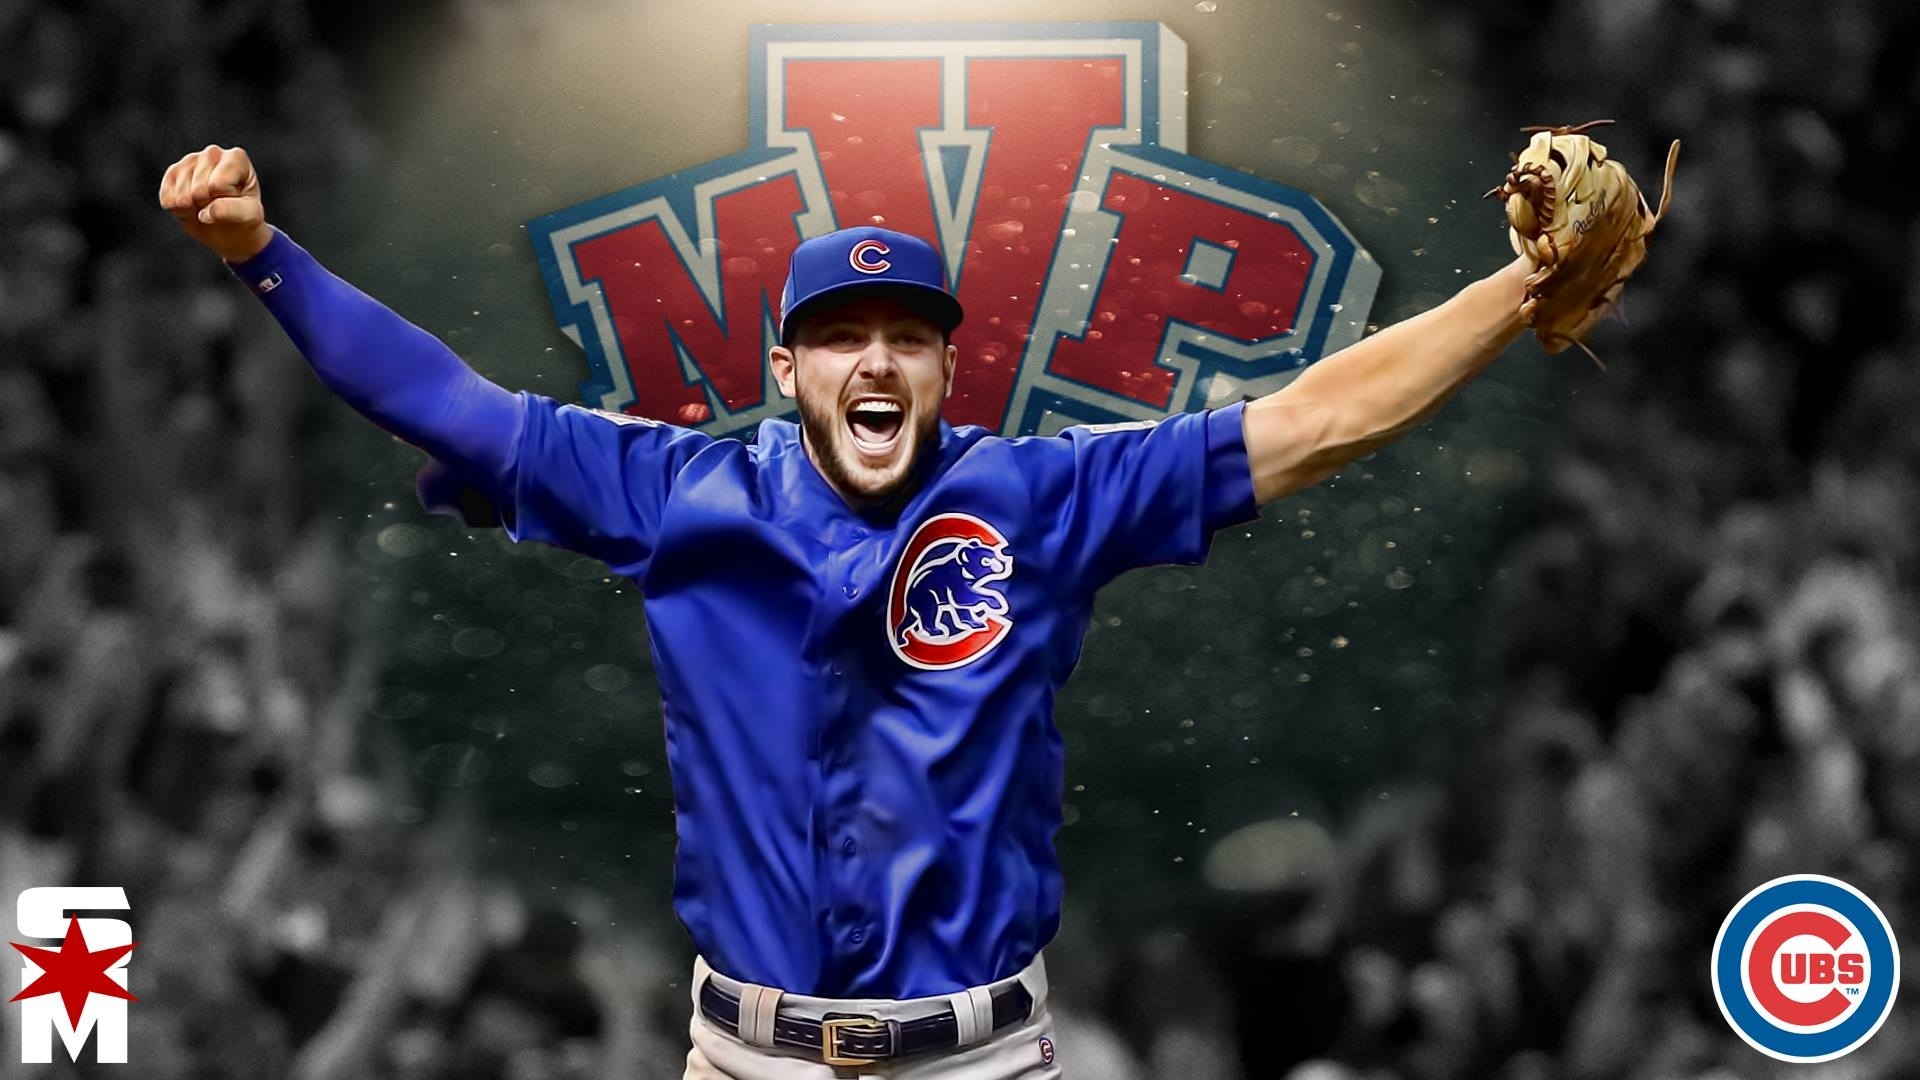 kris bryant wallpapers - wallpaper cave